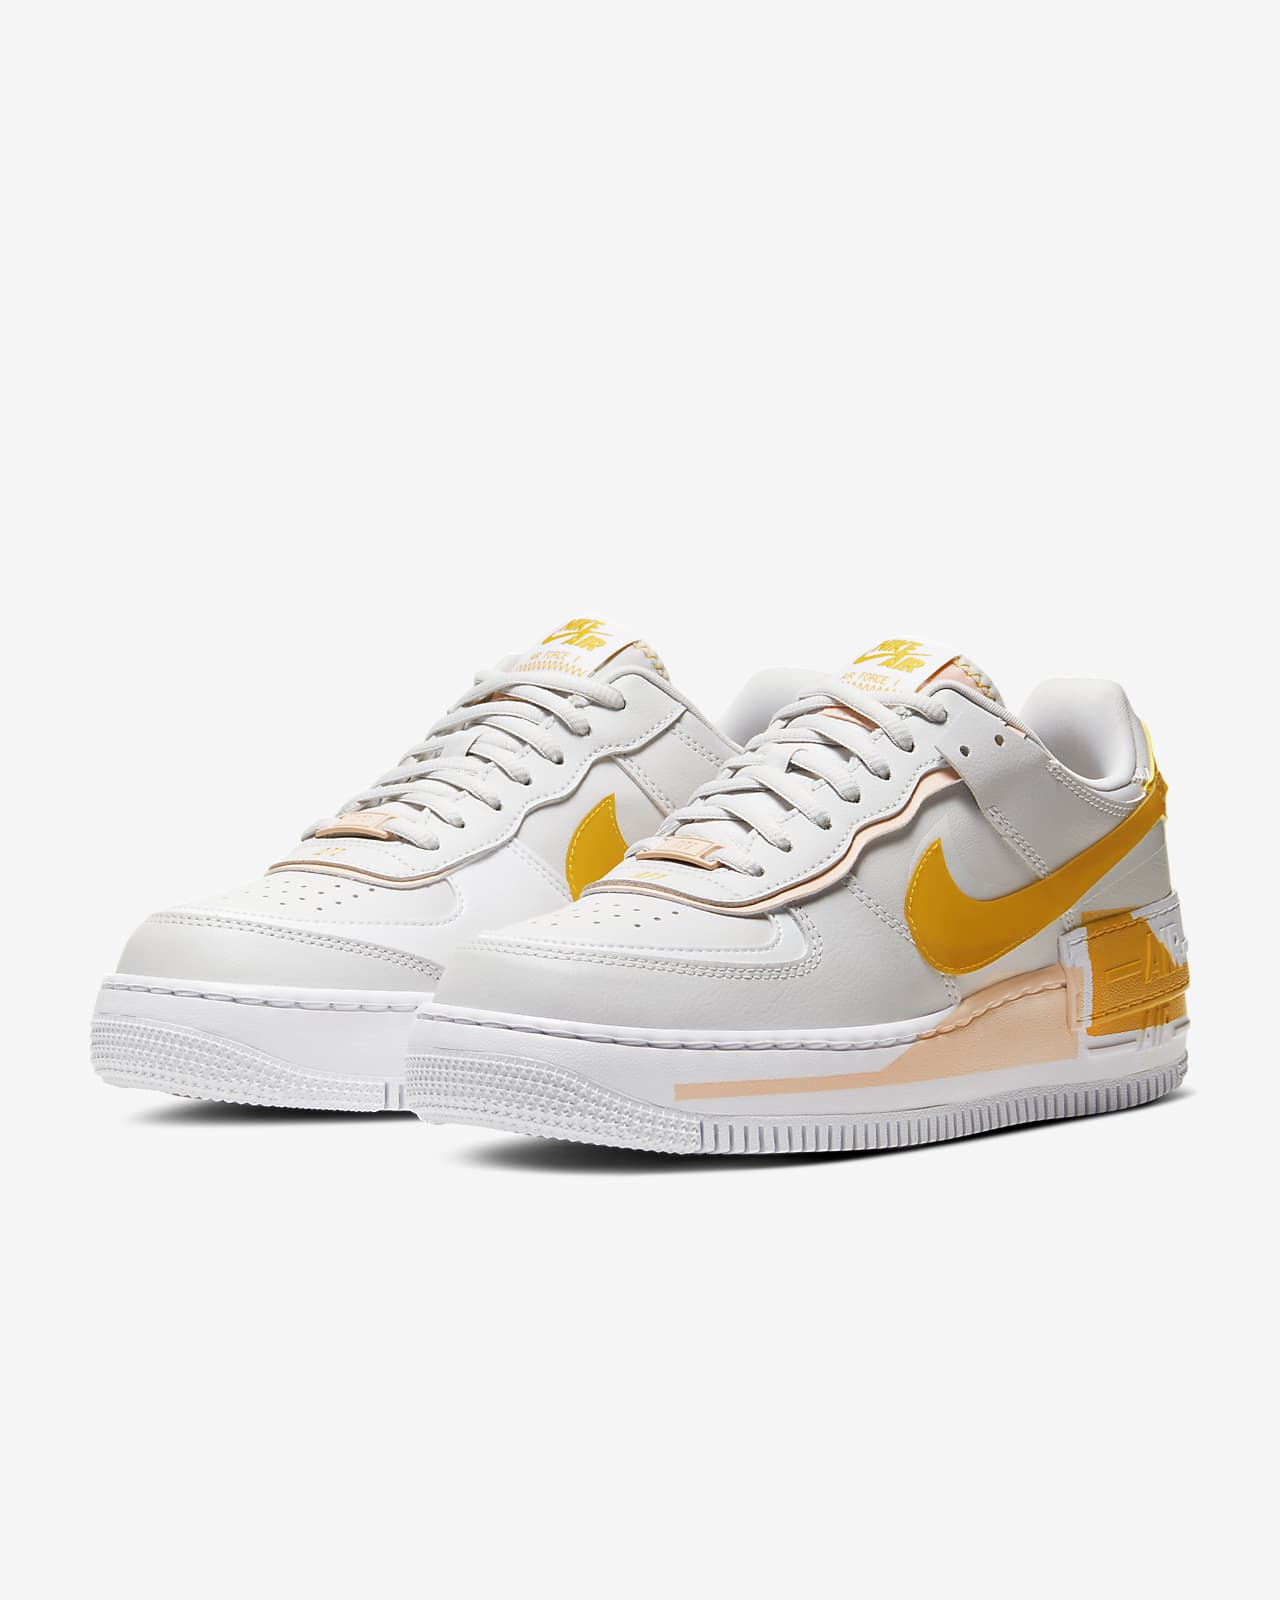 Nike Air Force 1 Shadow Se Women S Shoe Nike In This sneaker reflects this ethos in its design with double the swoosh, double the height and double the force. nike air force 1 shadow se women s shoe